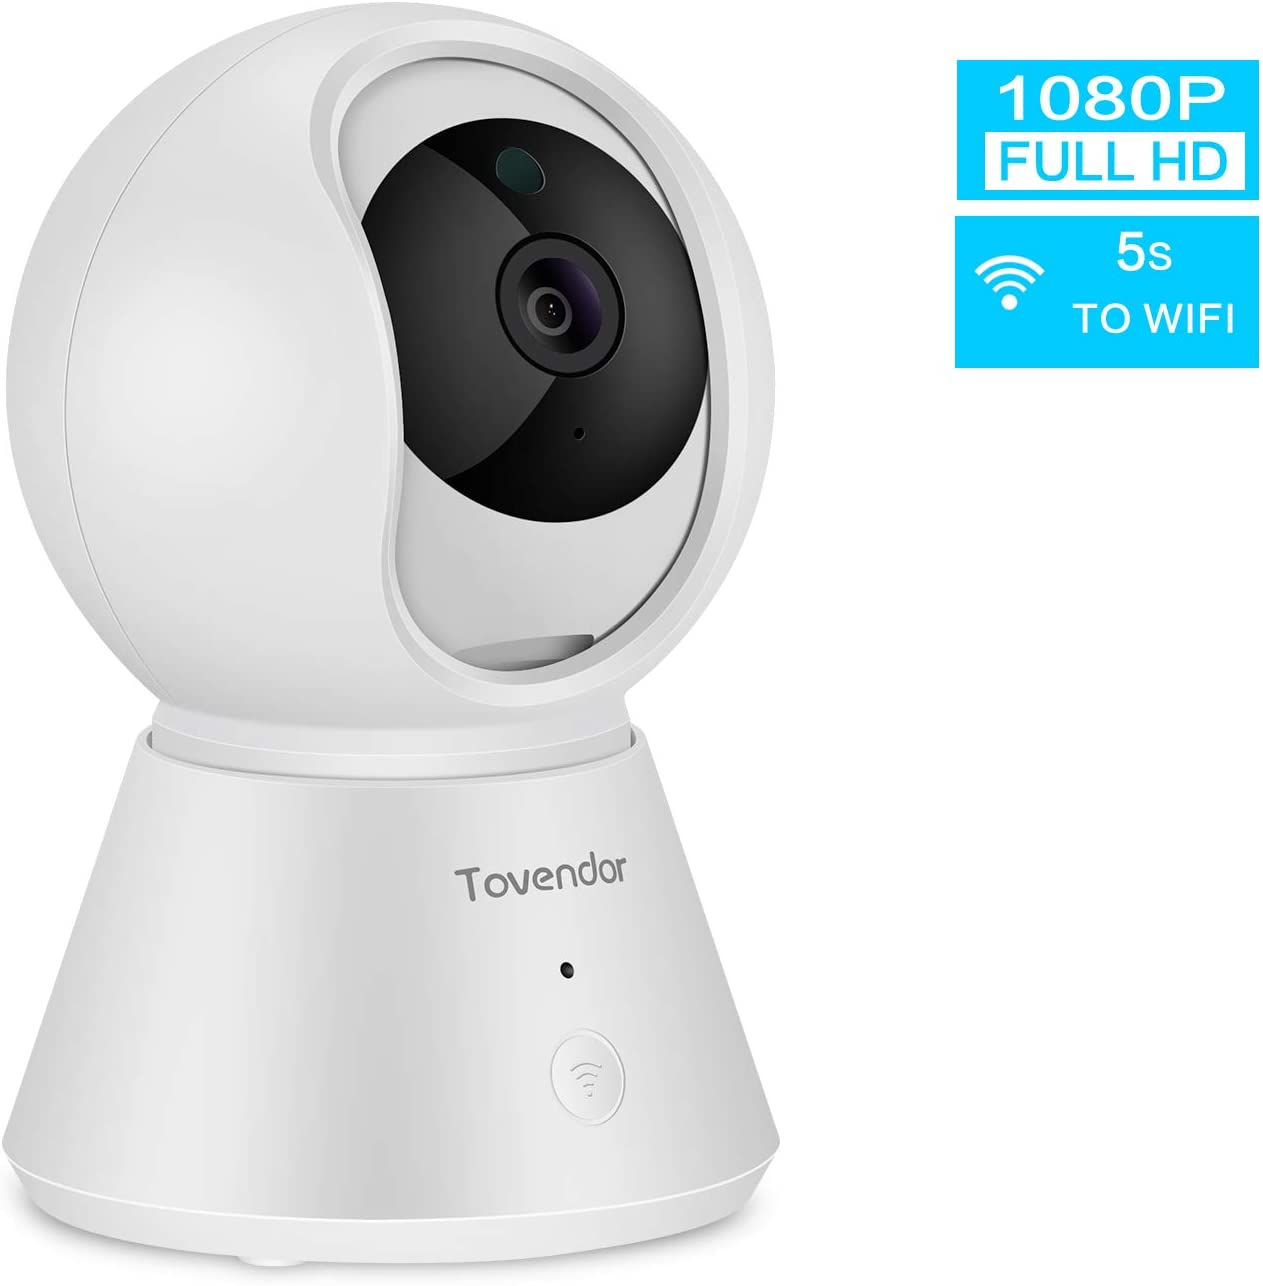 Tovendor 1080P Security Camera with Smart Motion Tracking Sound Detection Alert, 2.4G WiFi Indoor IP Camera for Baby, Pet and Elderly, IR Night Vision, 2-Way Audio